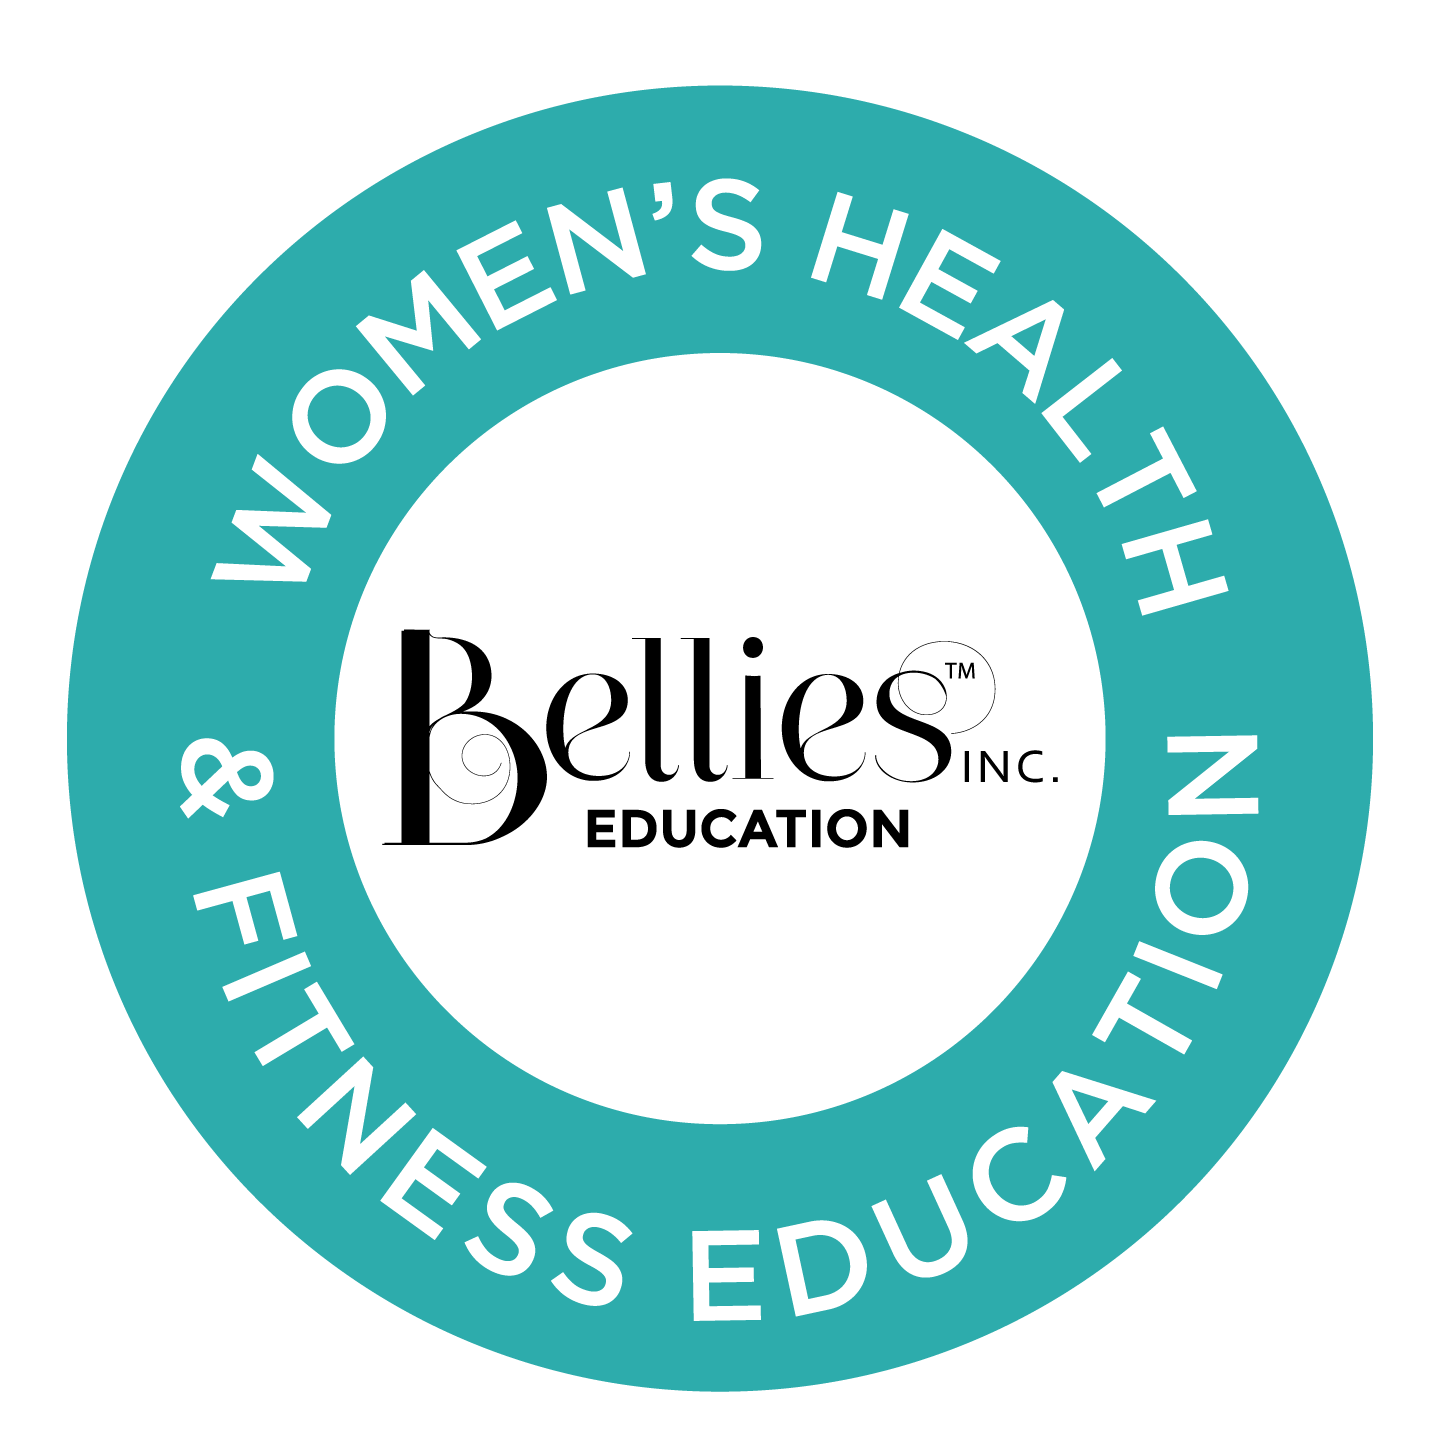 Bellies Inc. Education